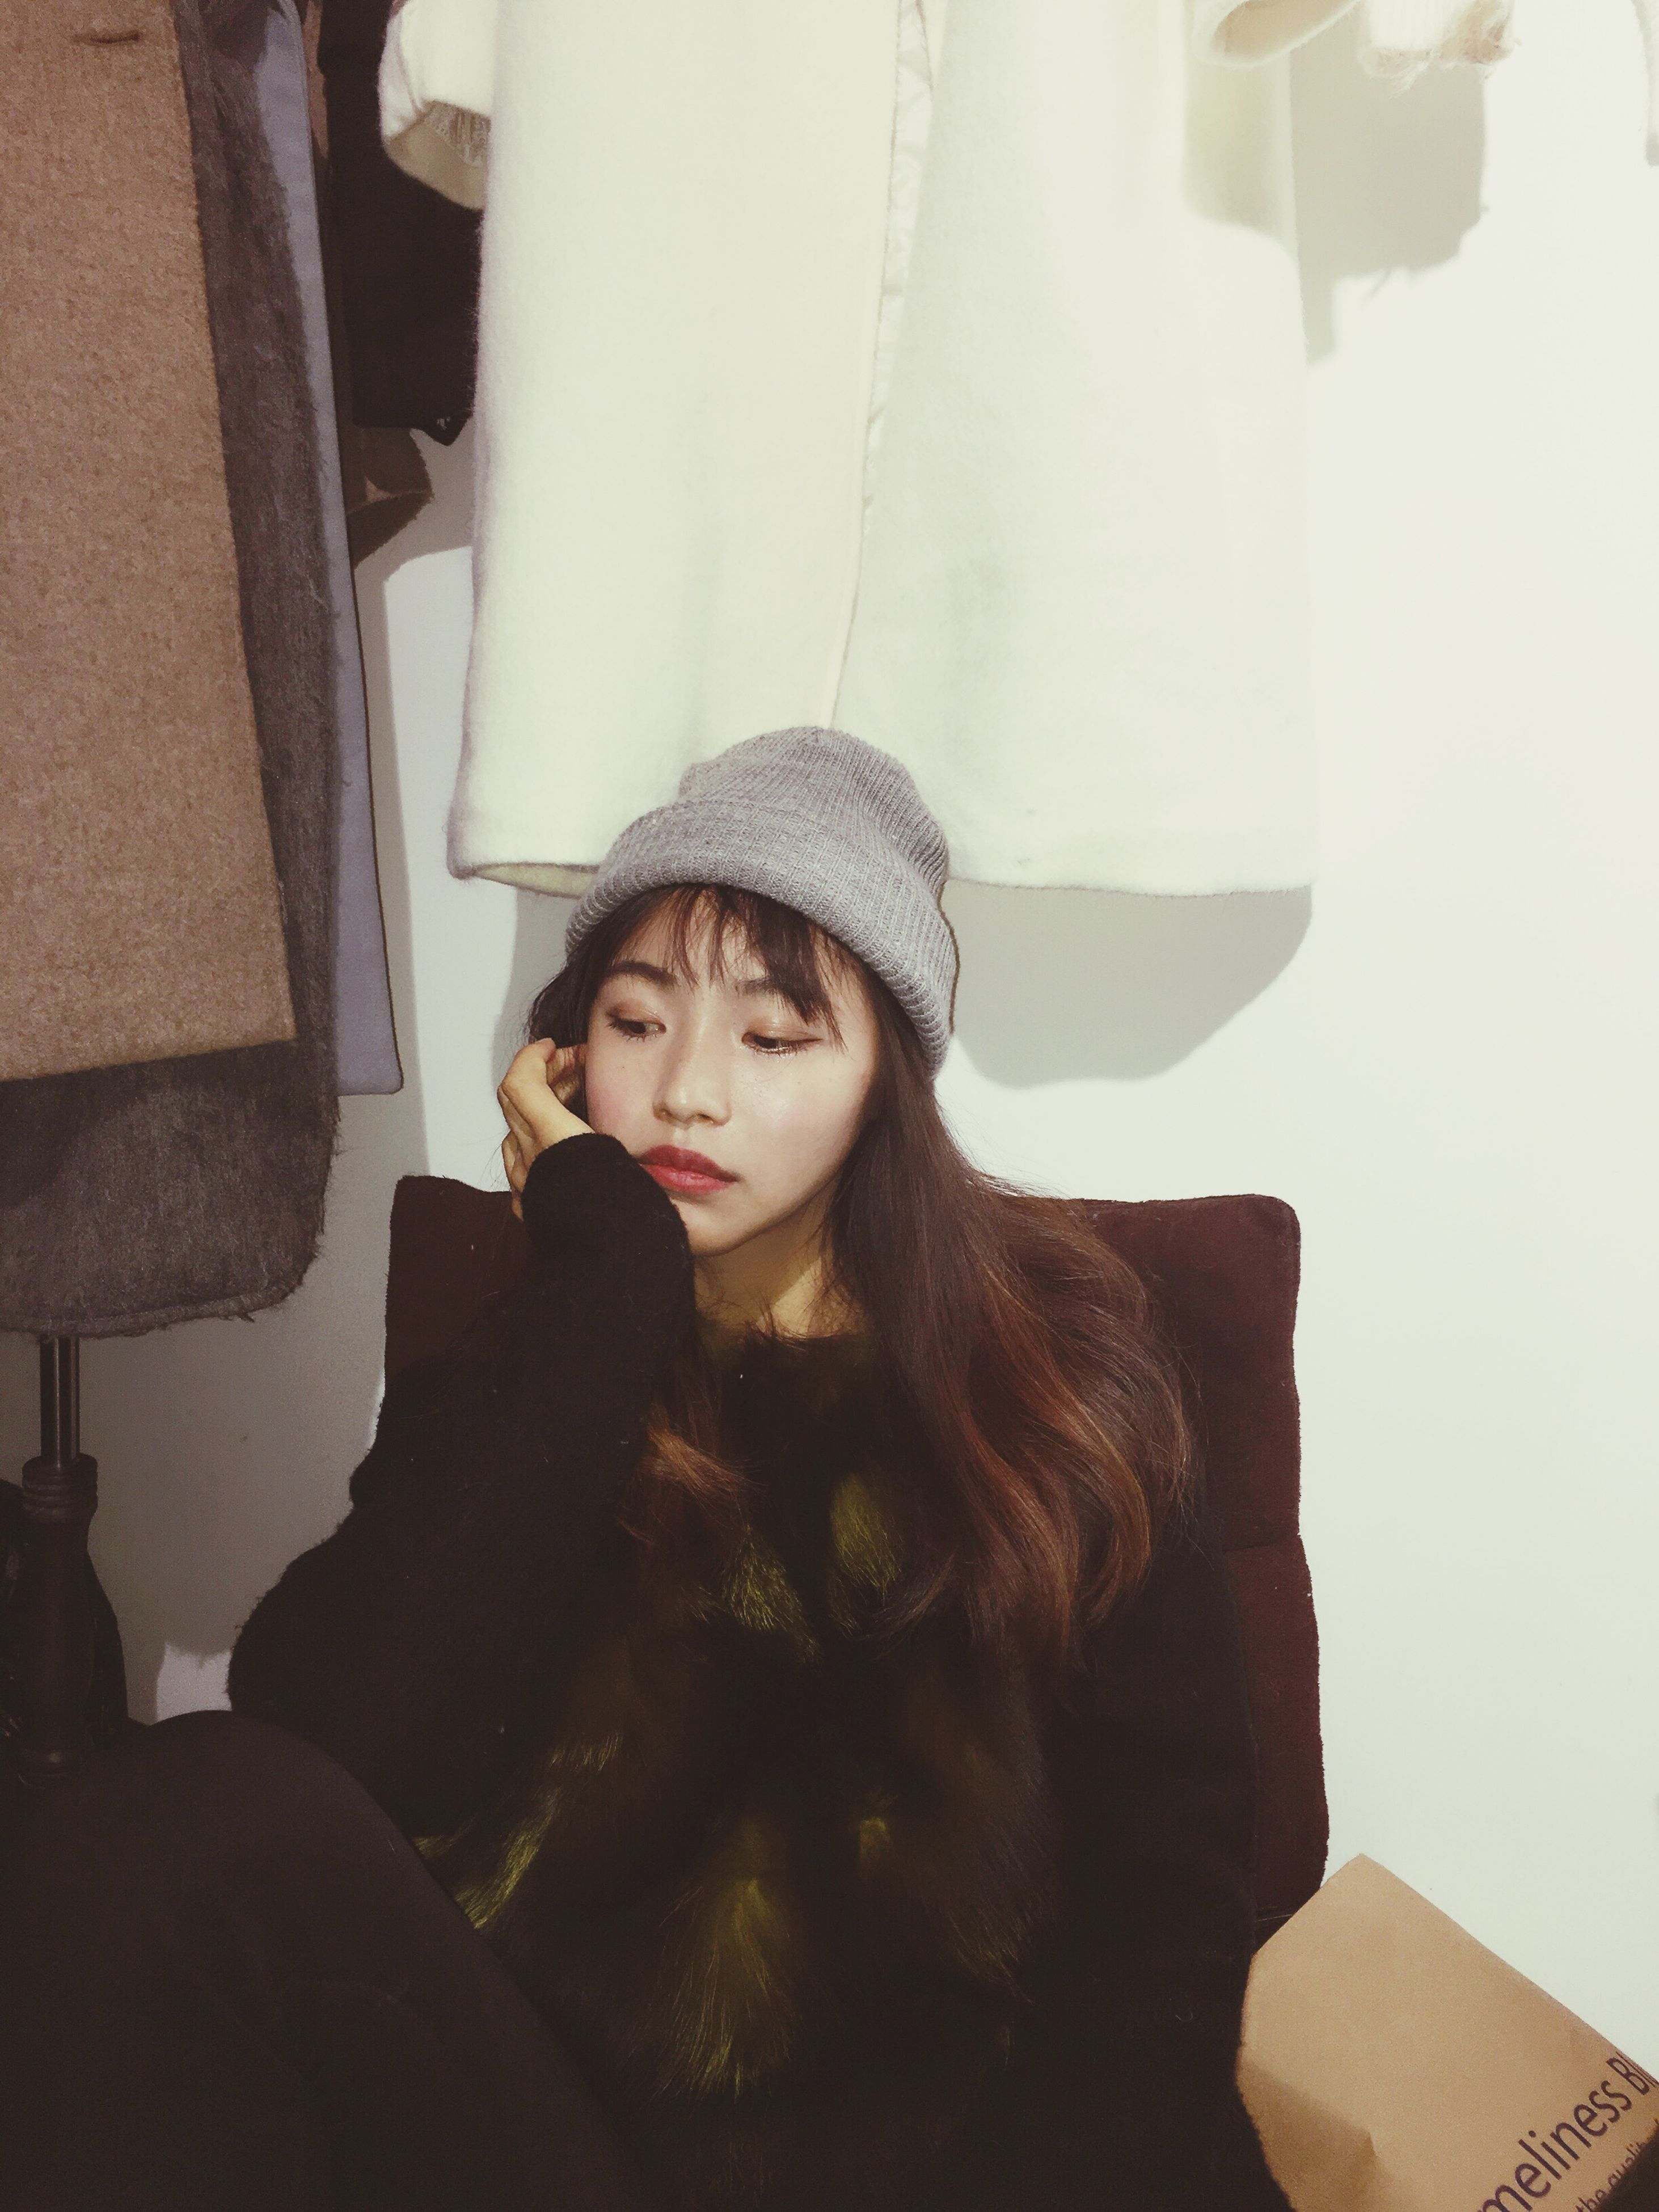 young women, lifestyles, young adult, real people, one person, waist up, beautiful woman, contemplation, leisure activity, indoors, hat, beauty, portrait, front view, home interior, warm clothing, one young woman only, only women, one woman only, day, adults only, people, adult